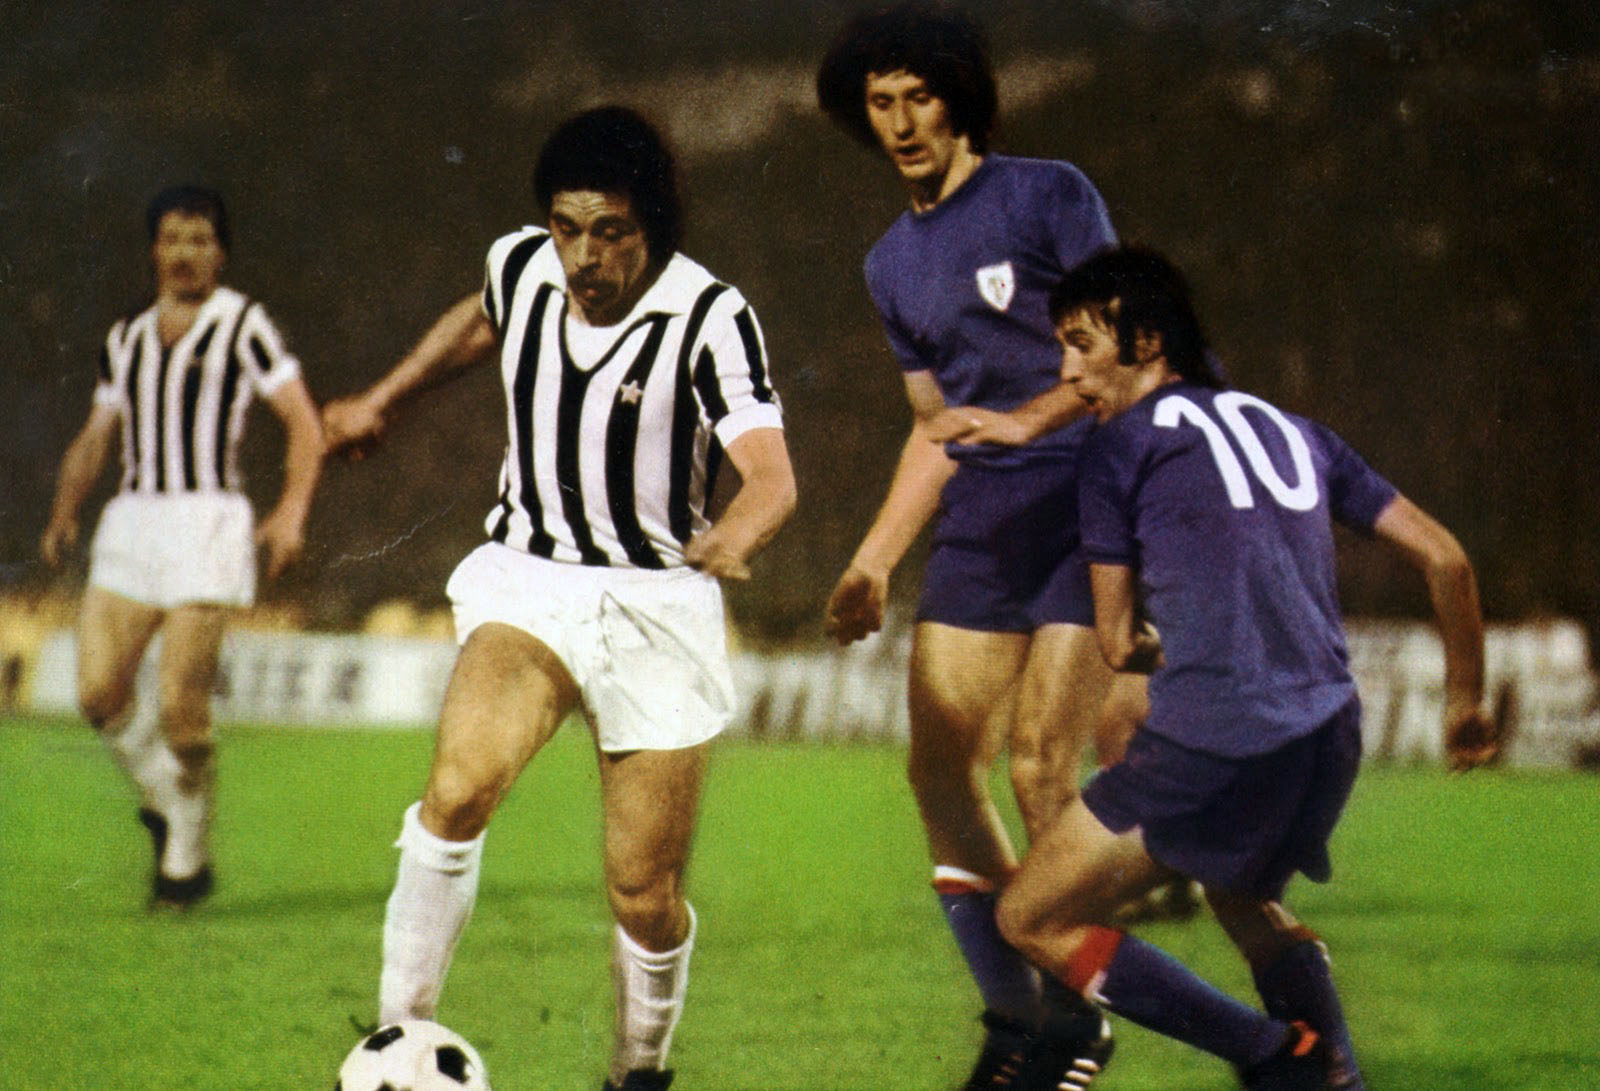 coppa_uefa_1976-77_-_juventus_vs_athletic_club_-_franco_causio